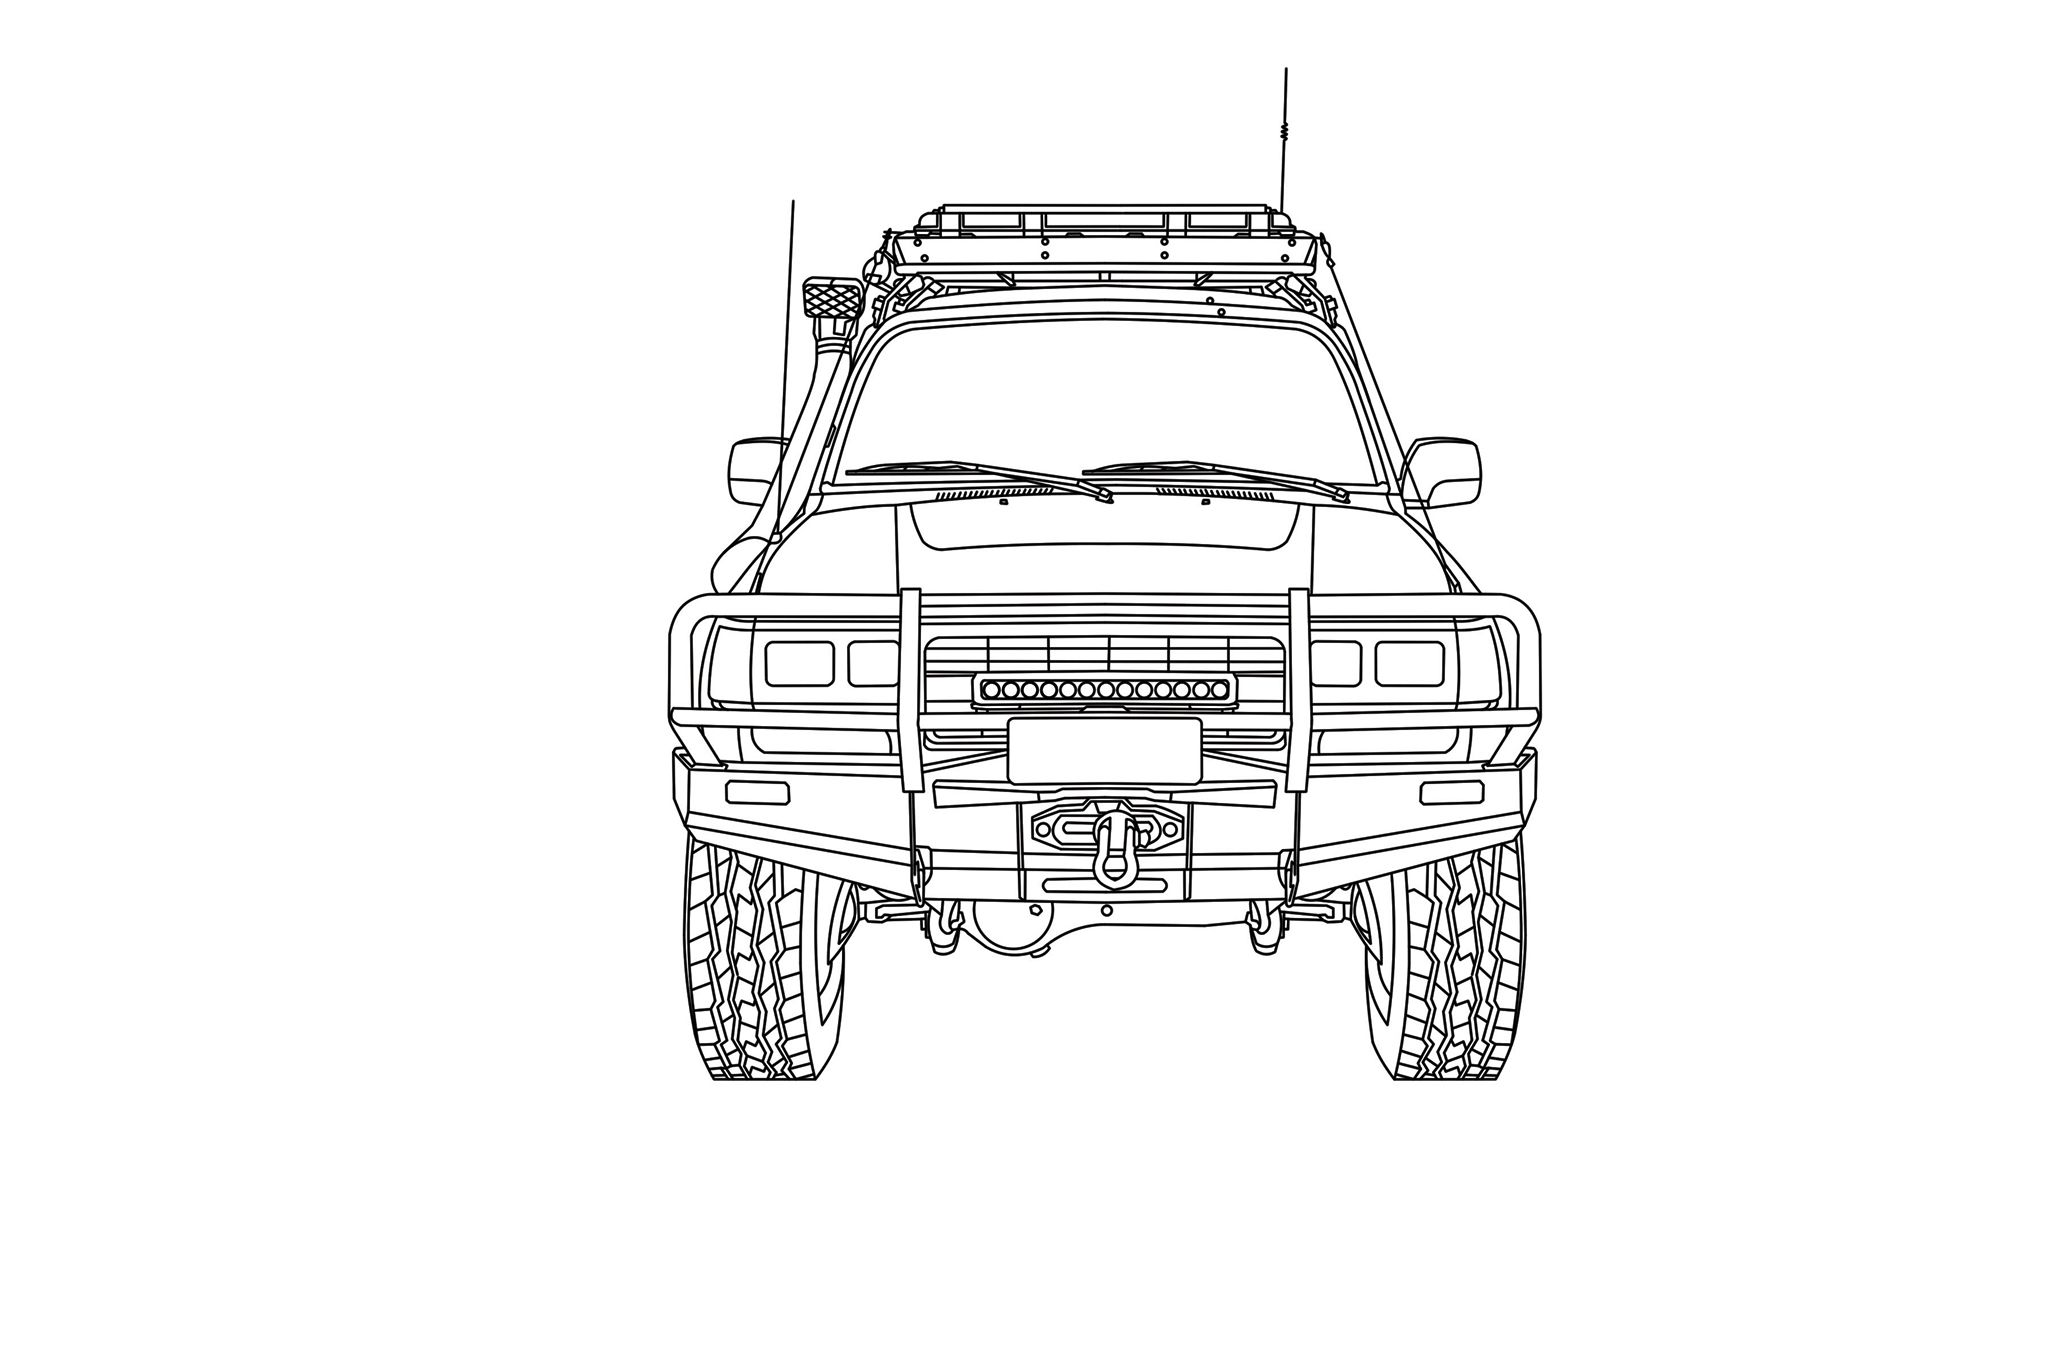 1994 toyota land cruiser diagram rear [ 2048 x 1360 Pixel ]